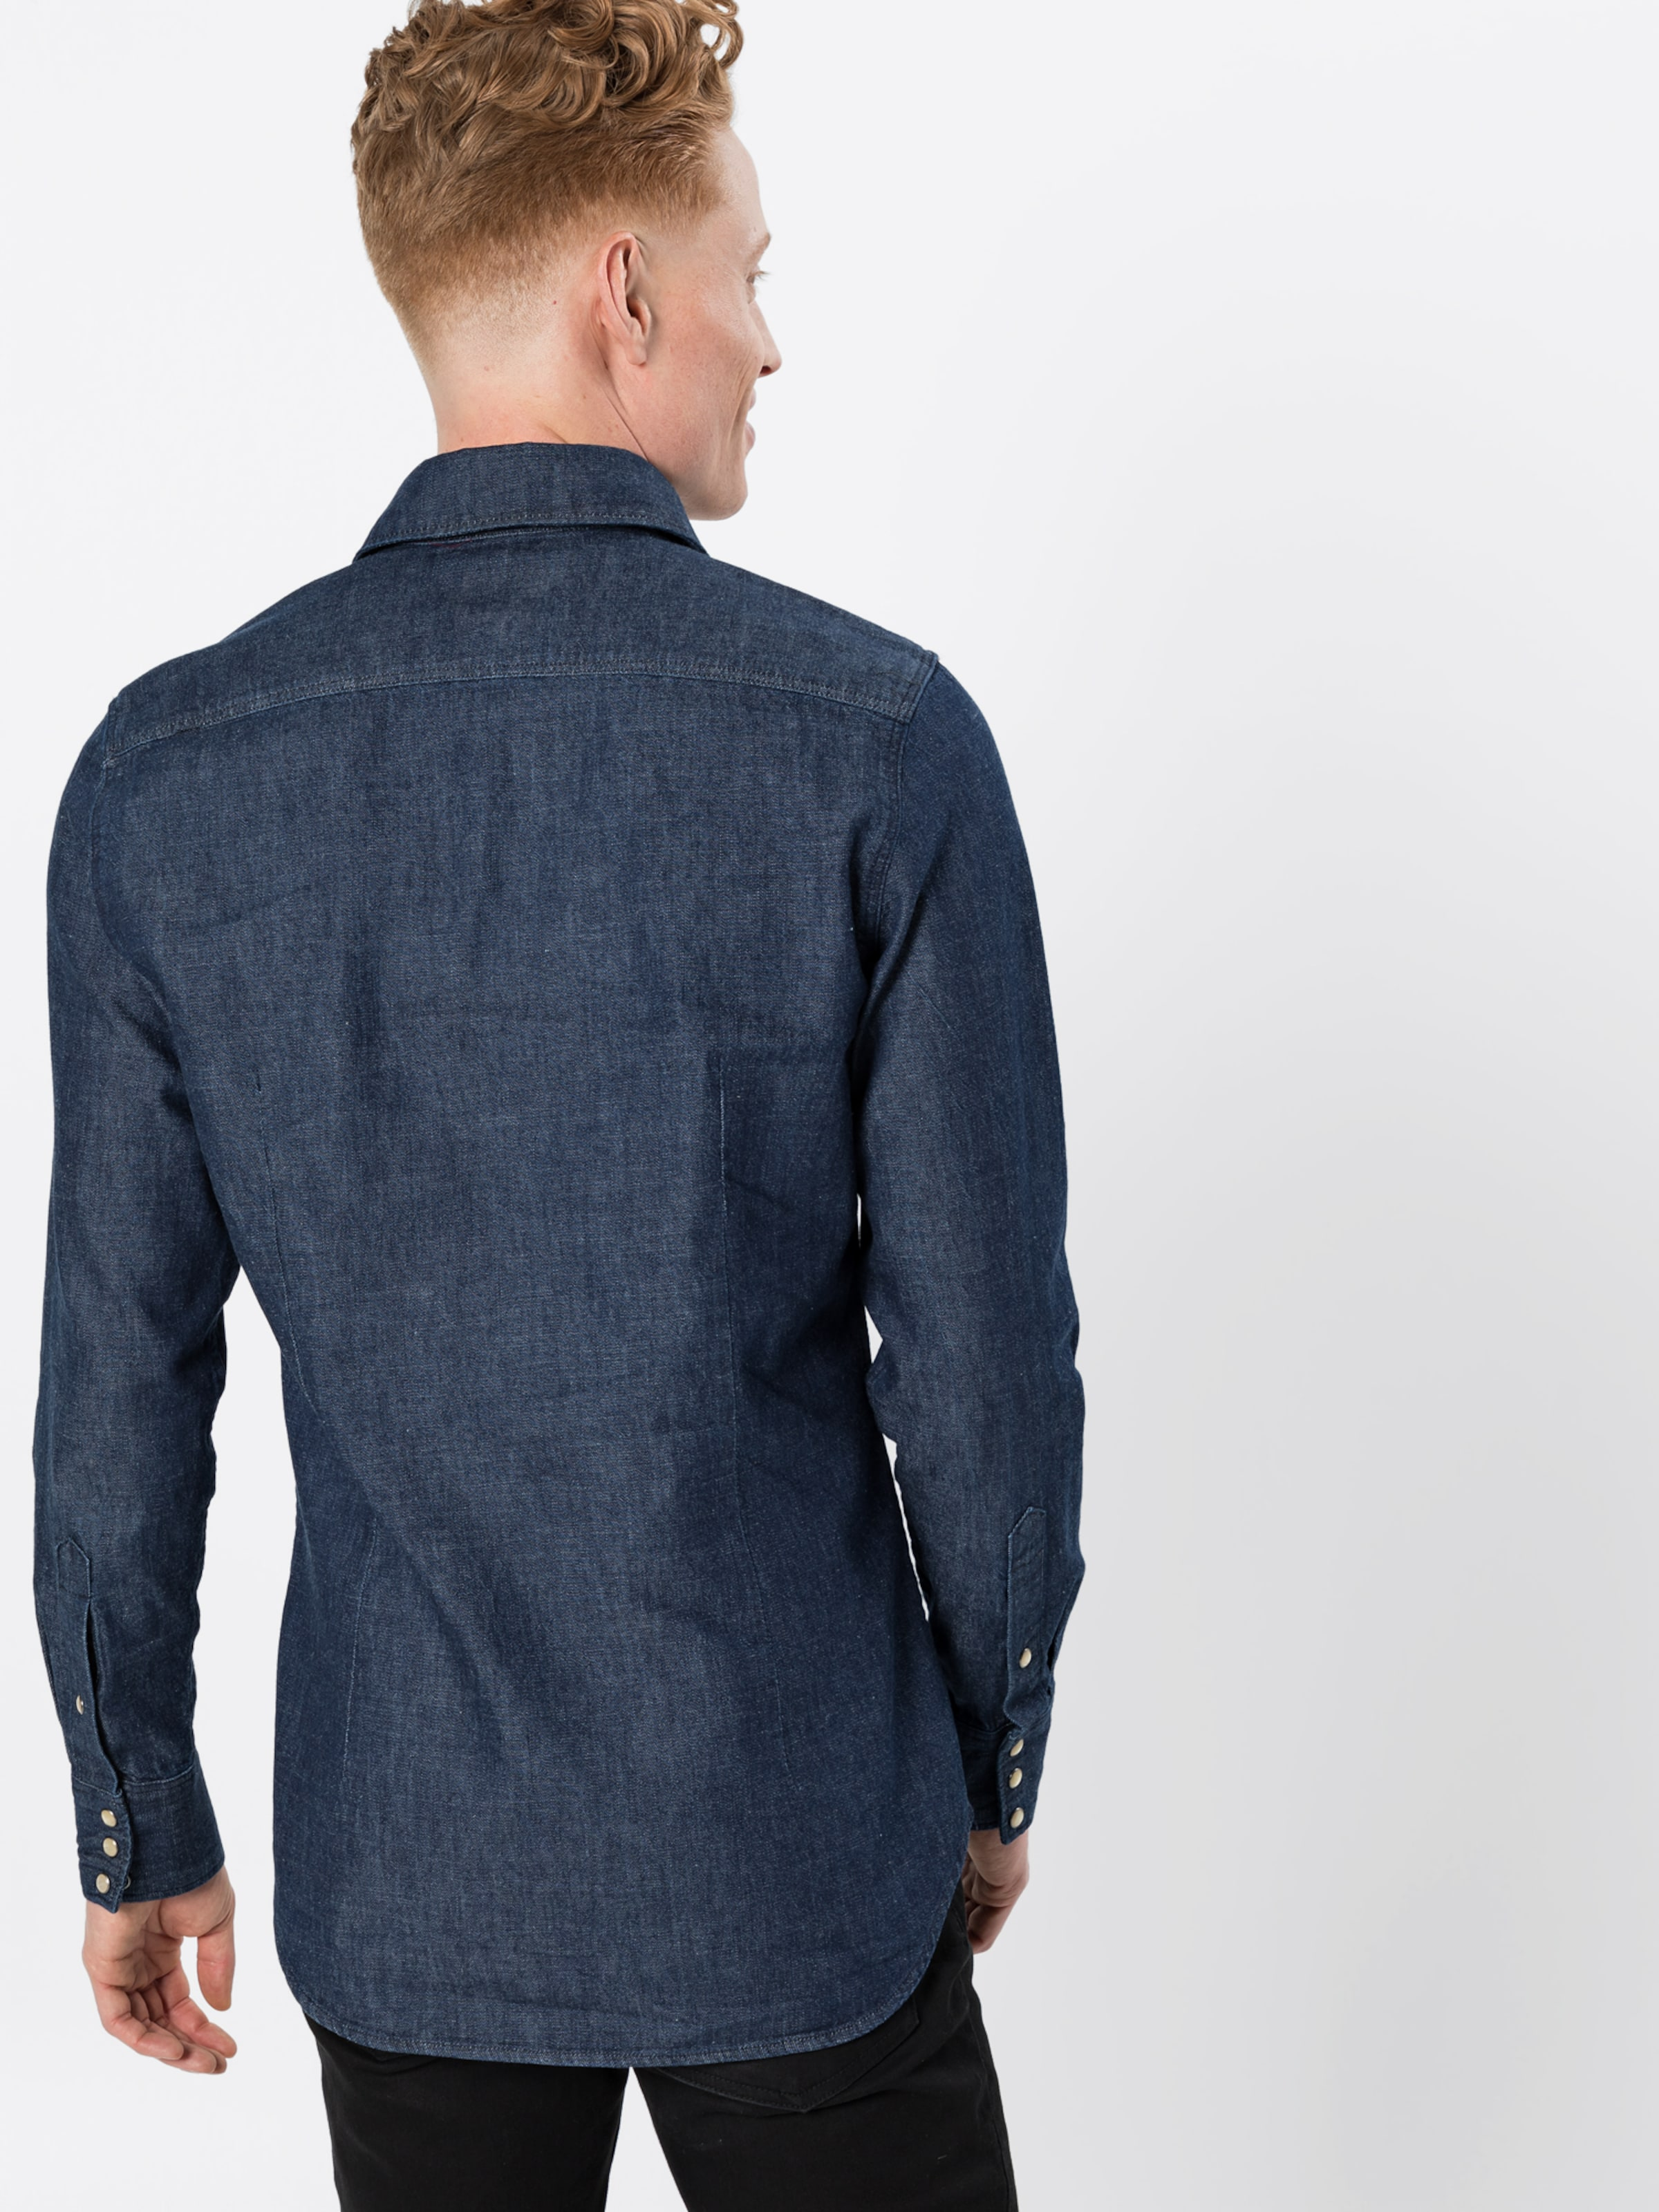 Blue Slim G Ls' Raw Hemd star Denim Shirt In '3301 Nvn8PwOym0